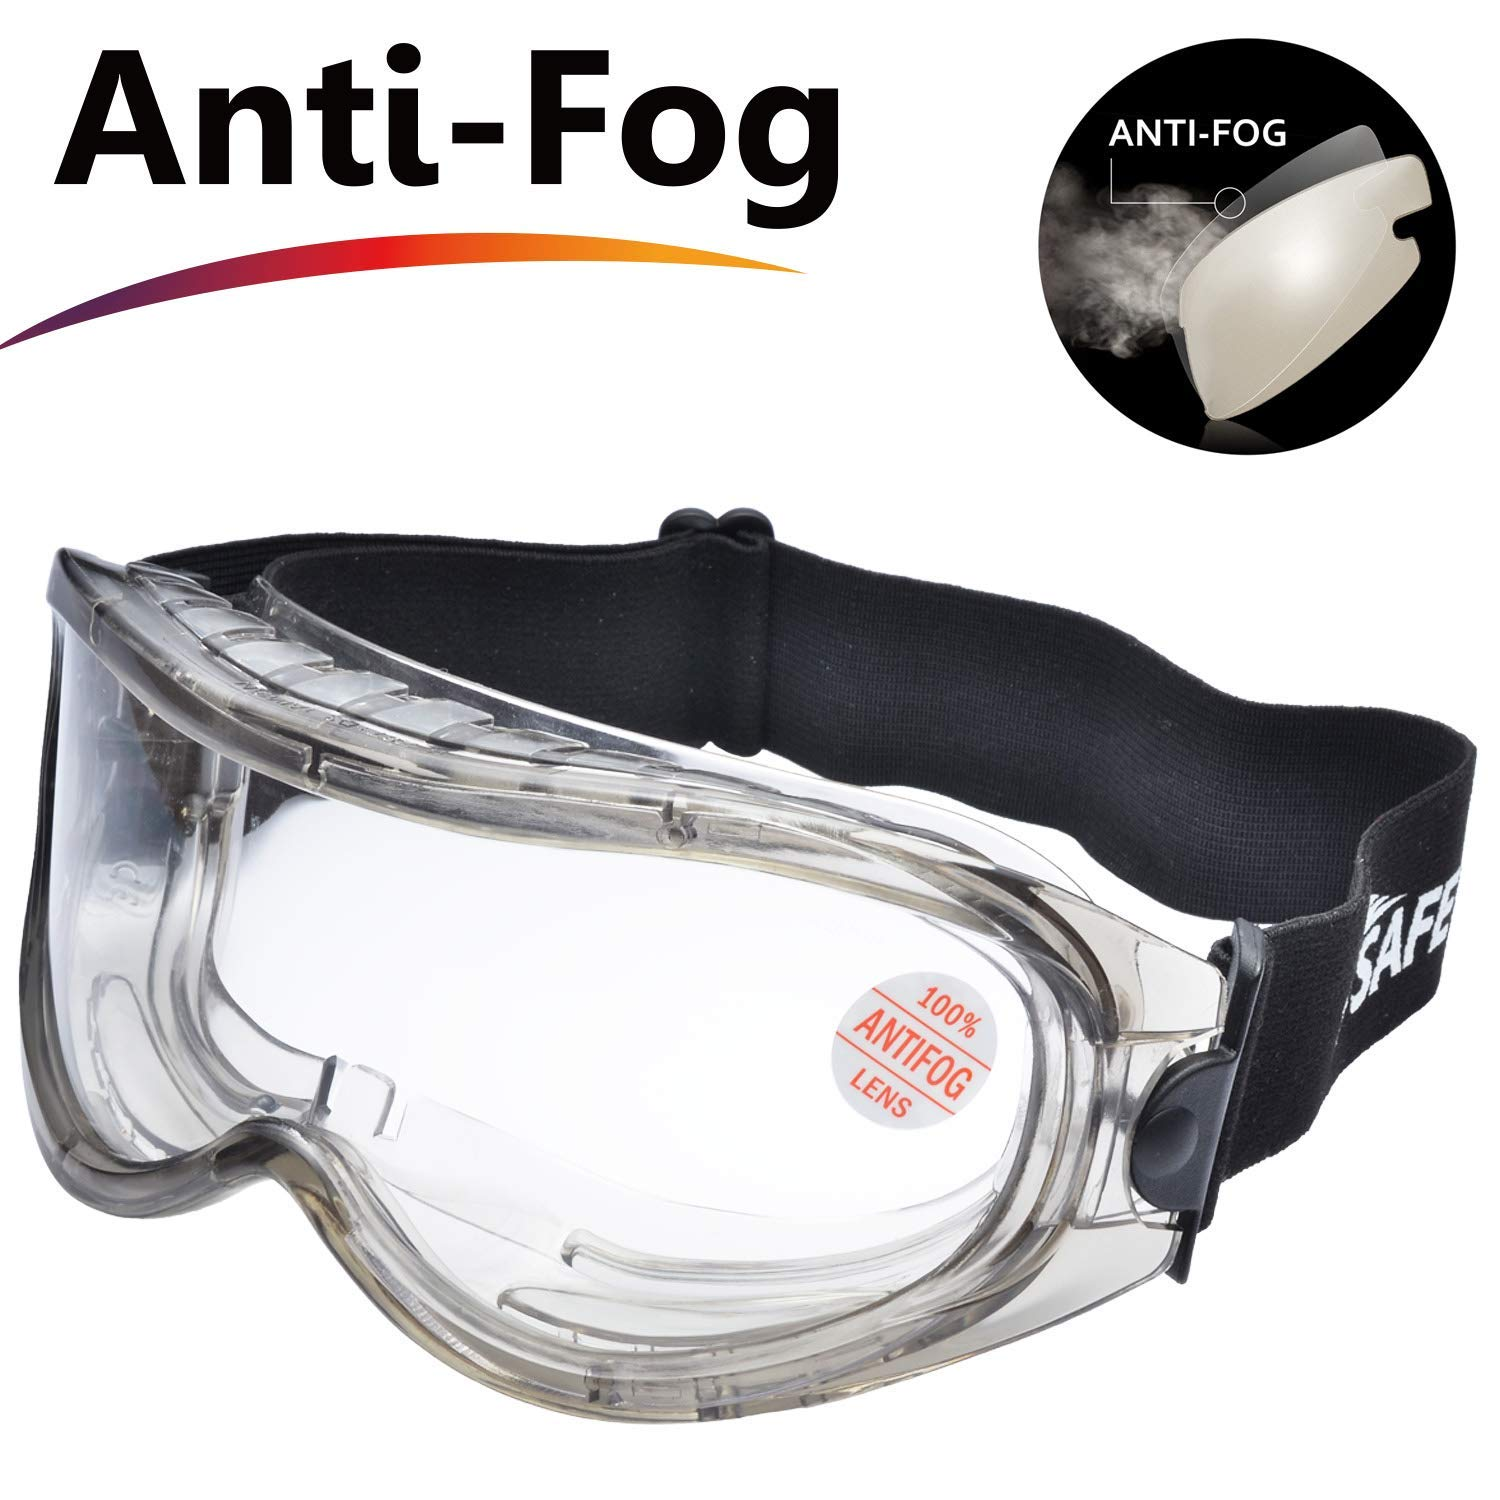 6d52d900c421 Safeyear Anti Fog Safety Goggles - SG007 Scratch Resistant   UV Protection  Safety Glasses for Men